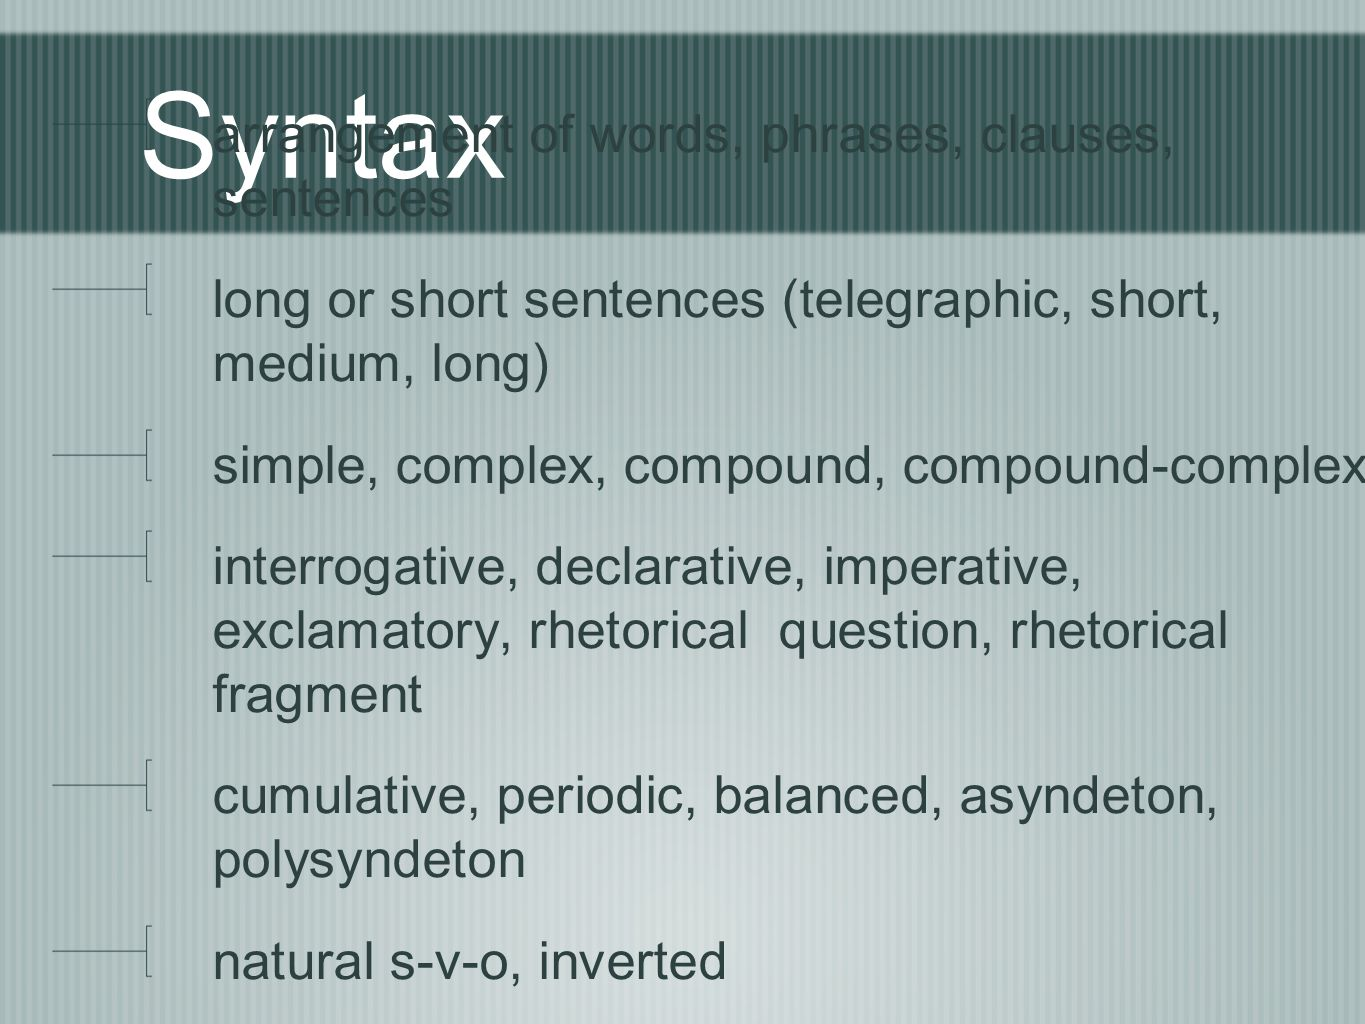 Syntax arrangement of words, phrases, clauses, sentences